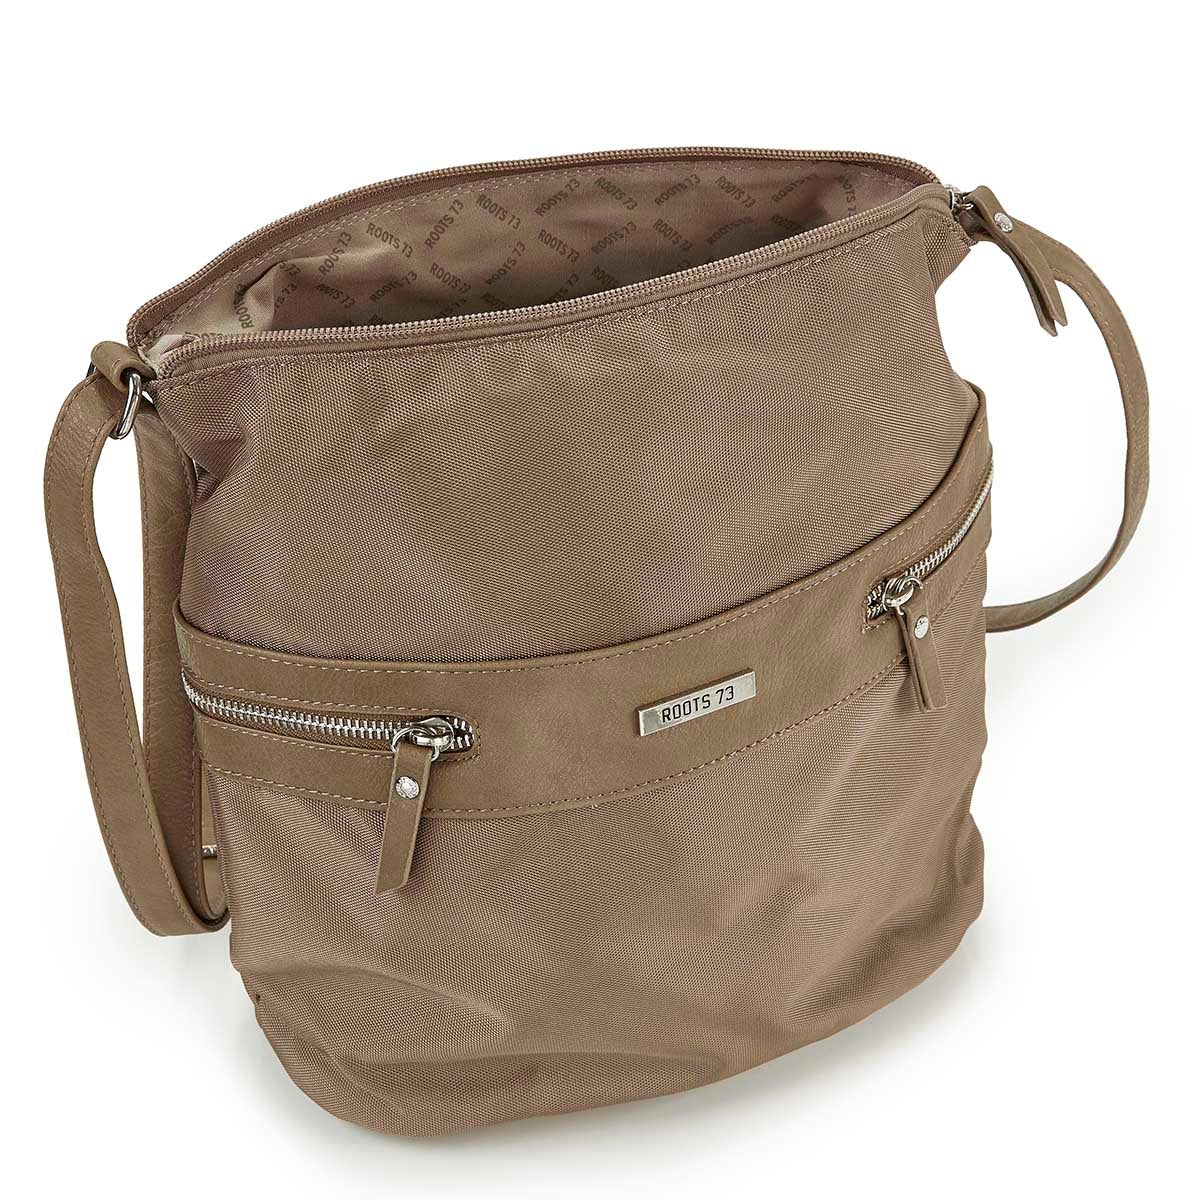 Lds Roots73 taupe pebble hobo bag